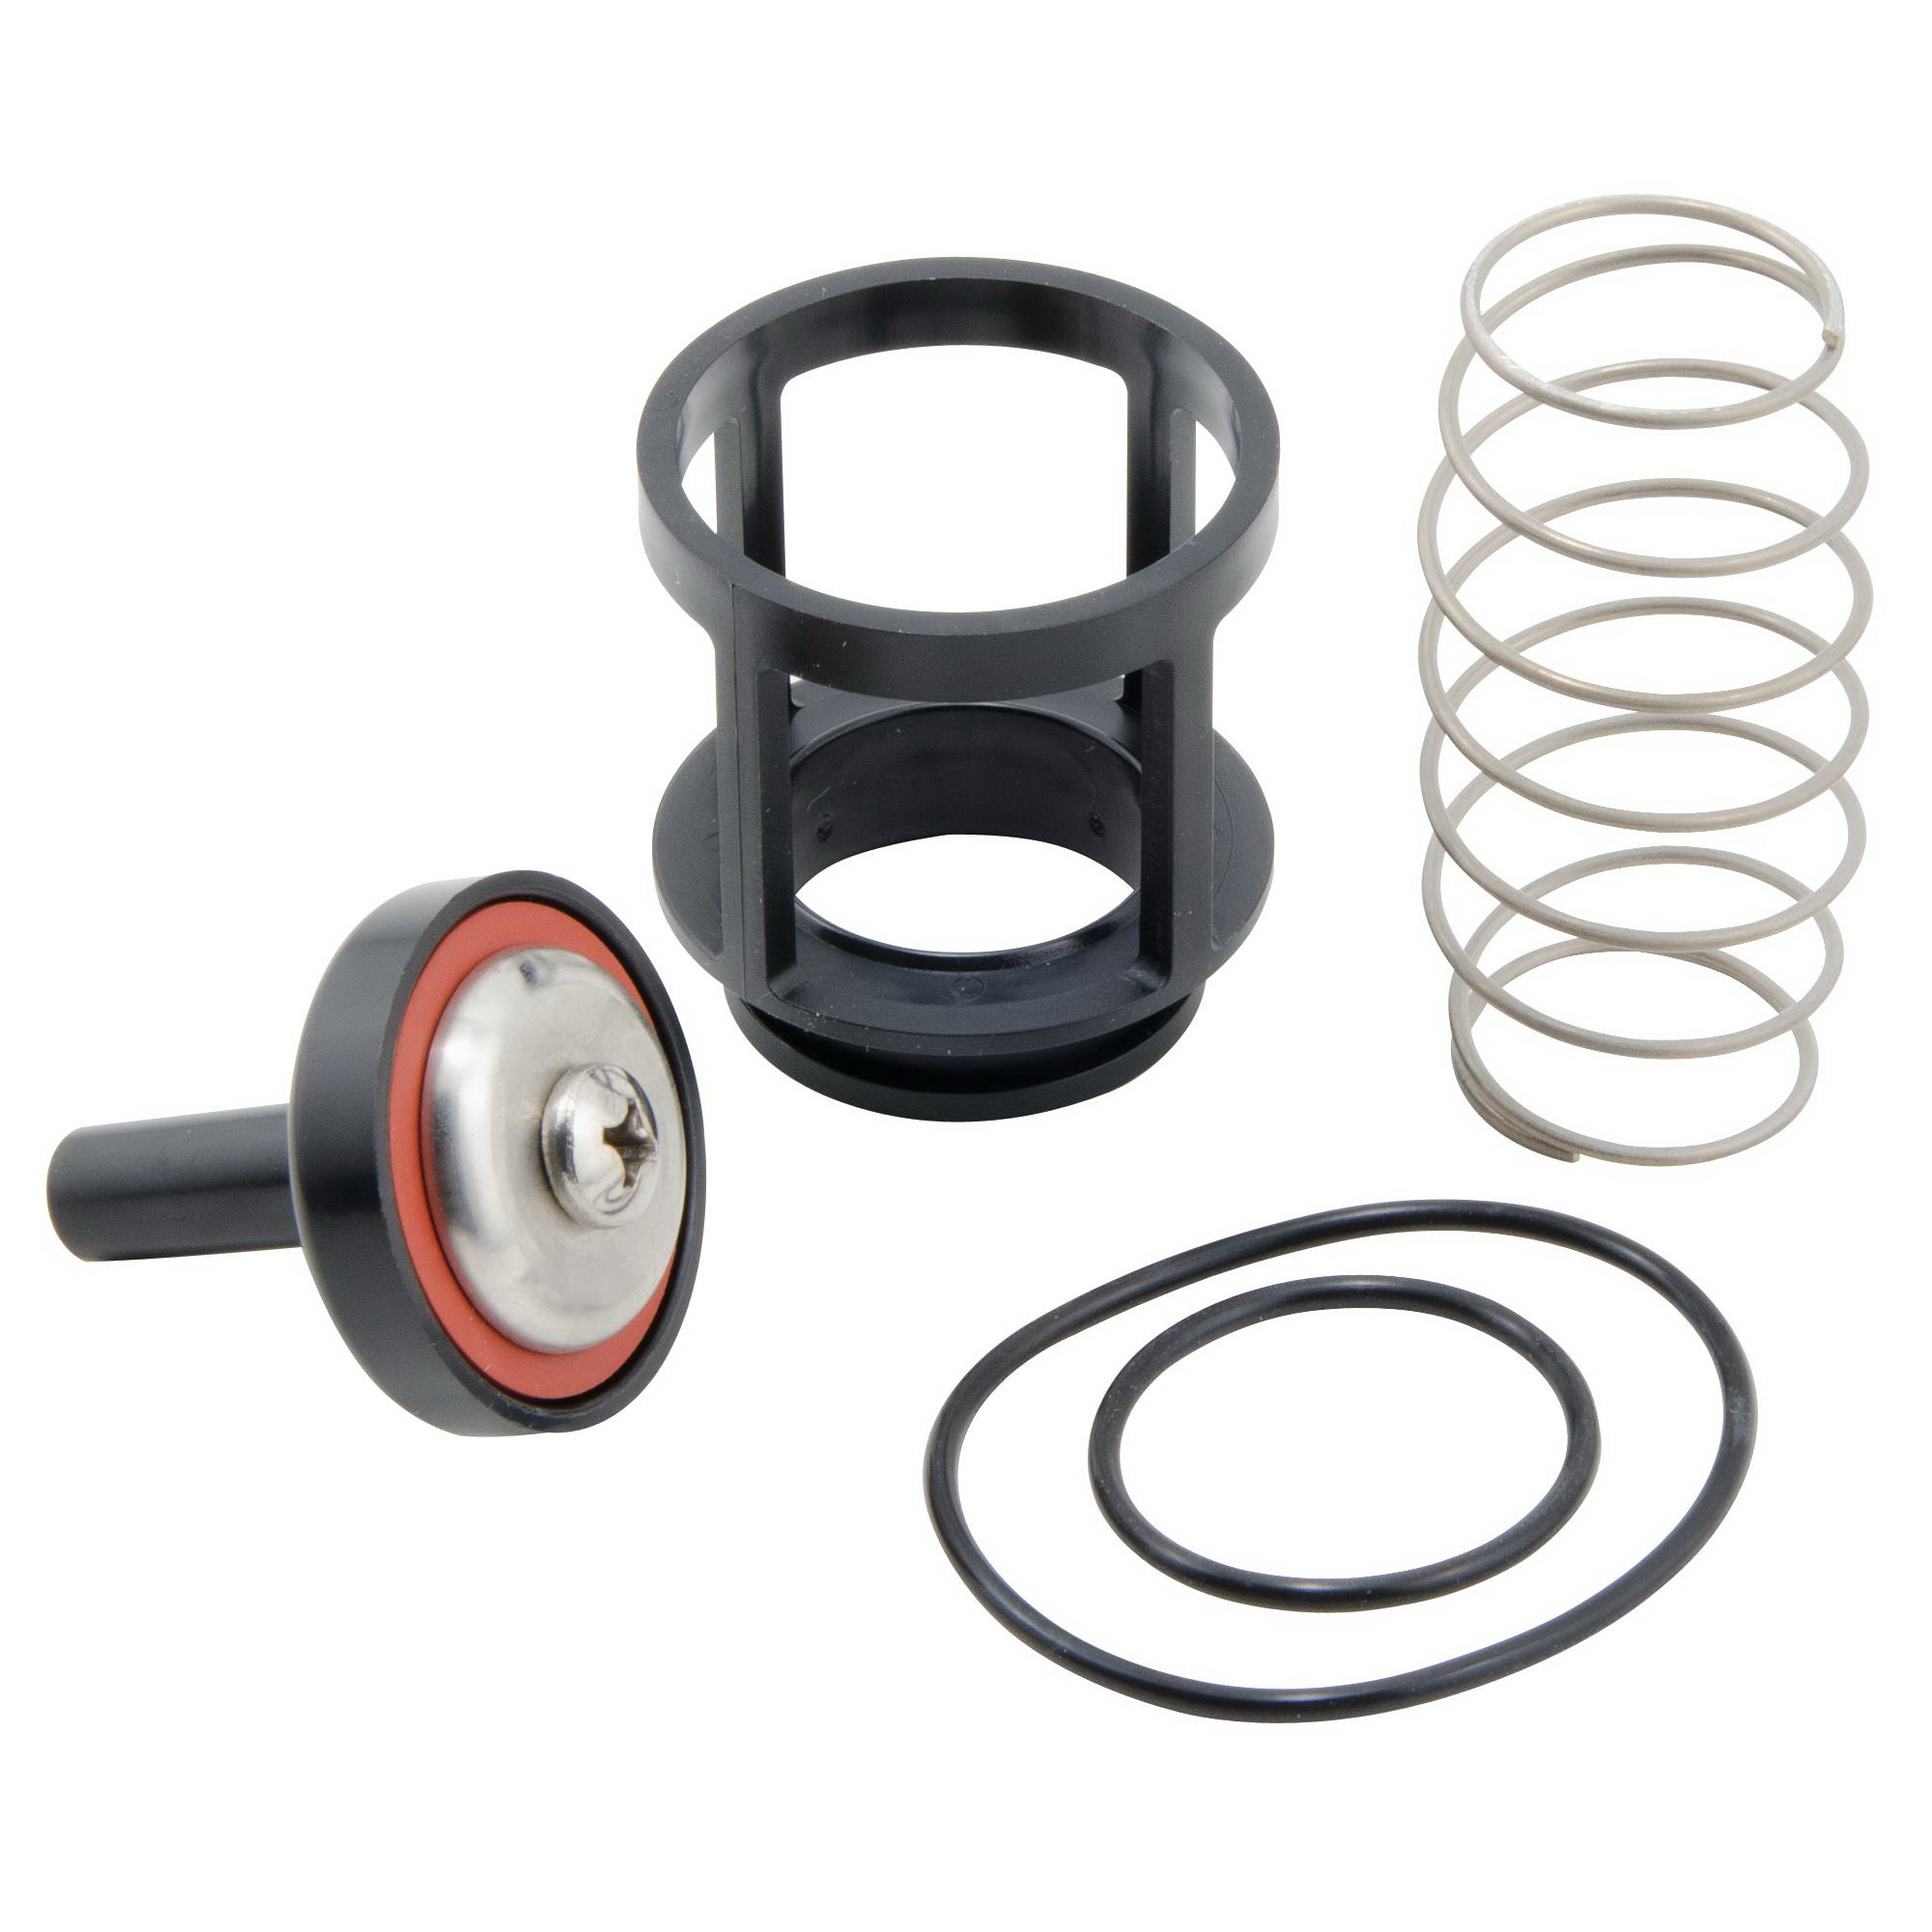 WATTS® 0888116 Check Valve Repair Kit for 3/4 in 919/LF919 Series Reduced Pressure Zone Assemblies